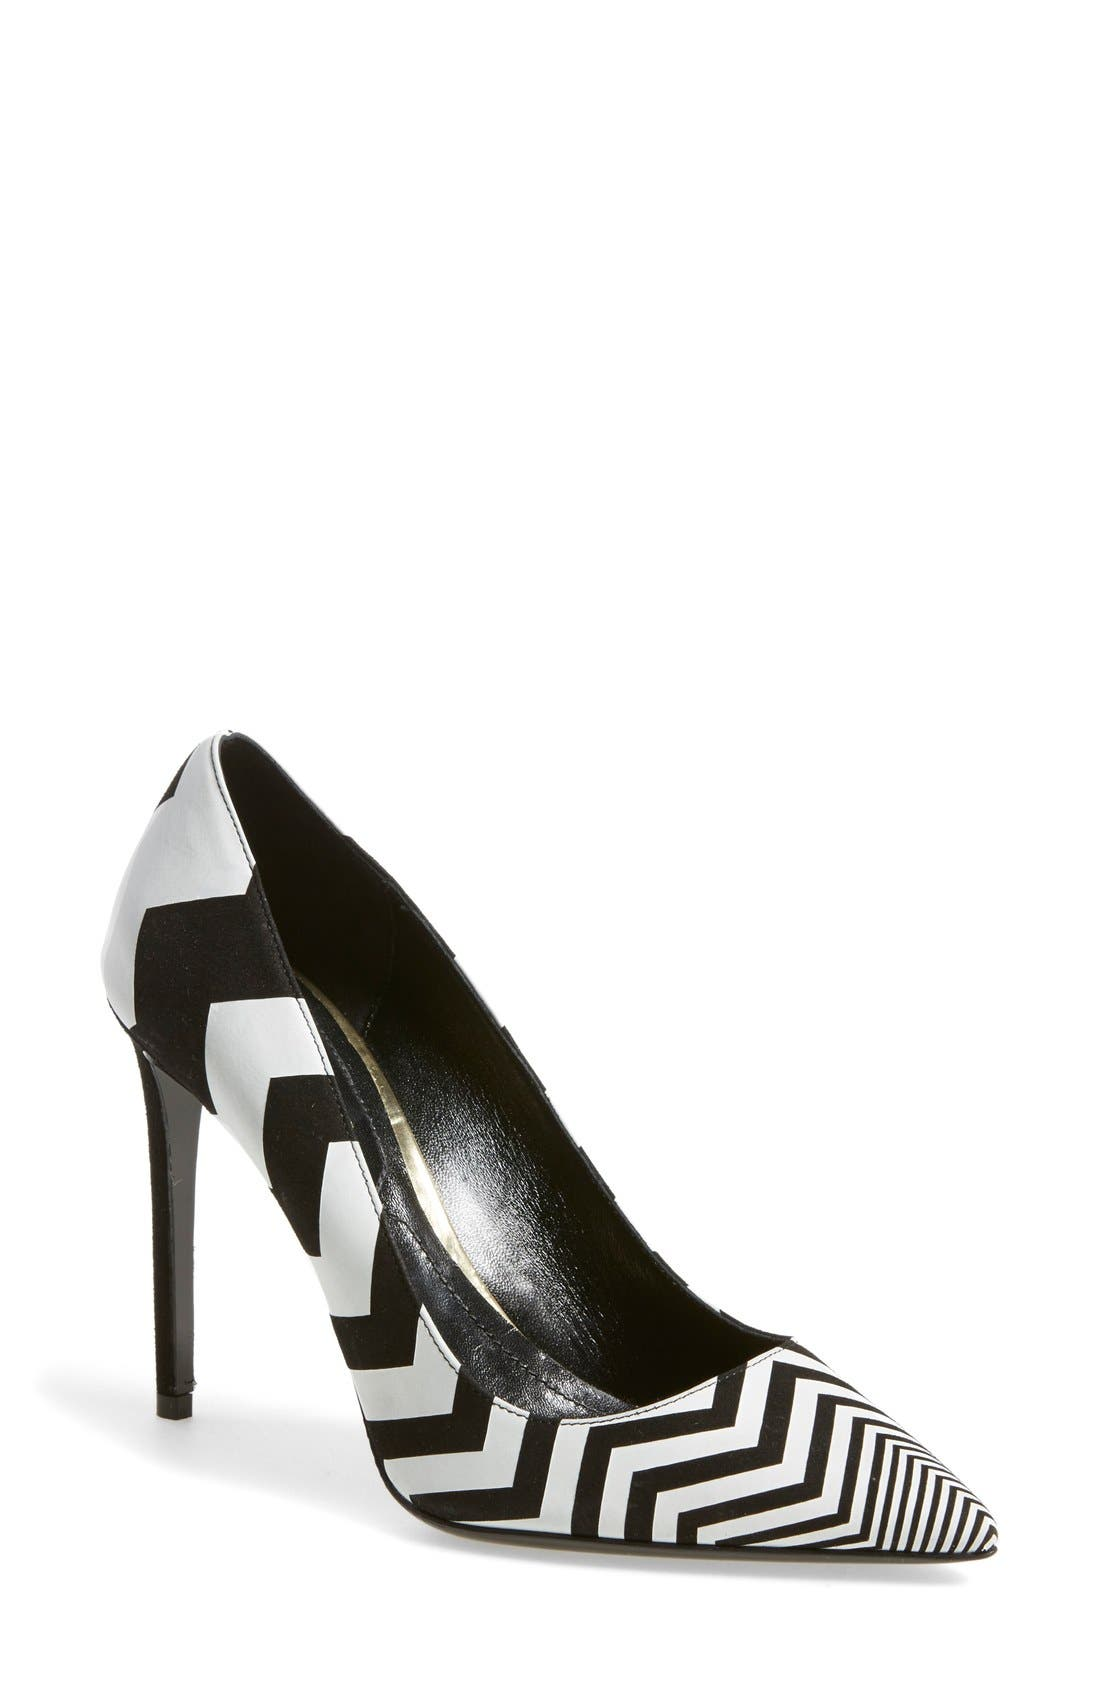 Main Image - Nicholas Kirkwood Chevron Pointy Toe Pump (Women)